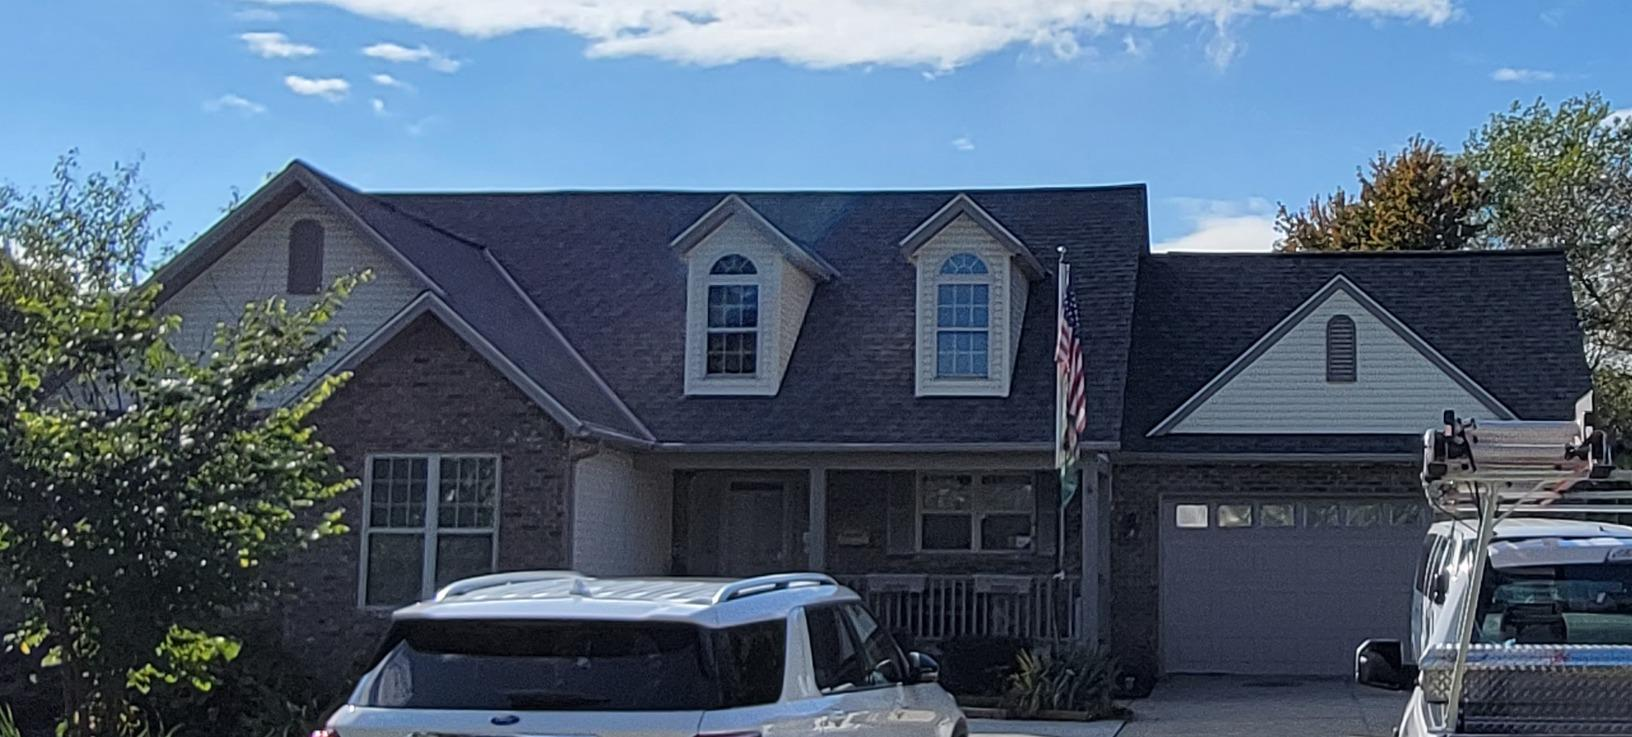 Painesville Township Roof Replacement - After Photo